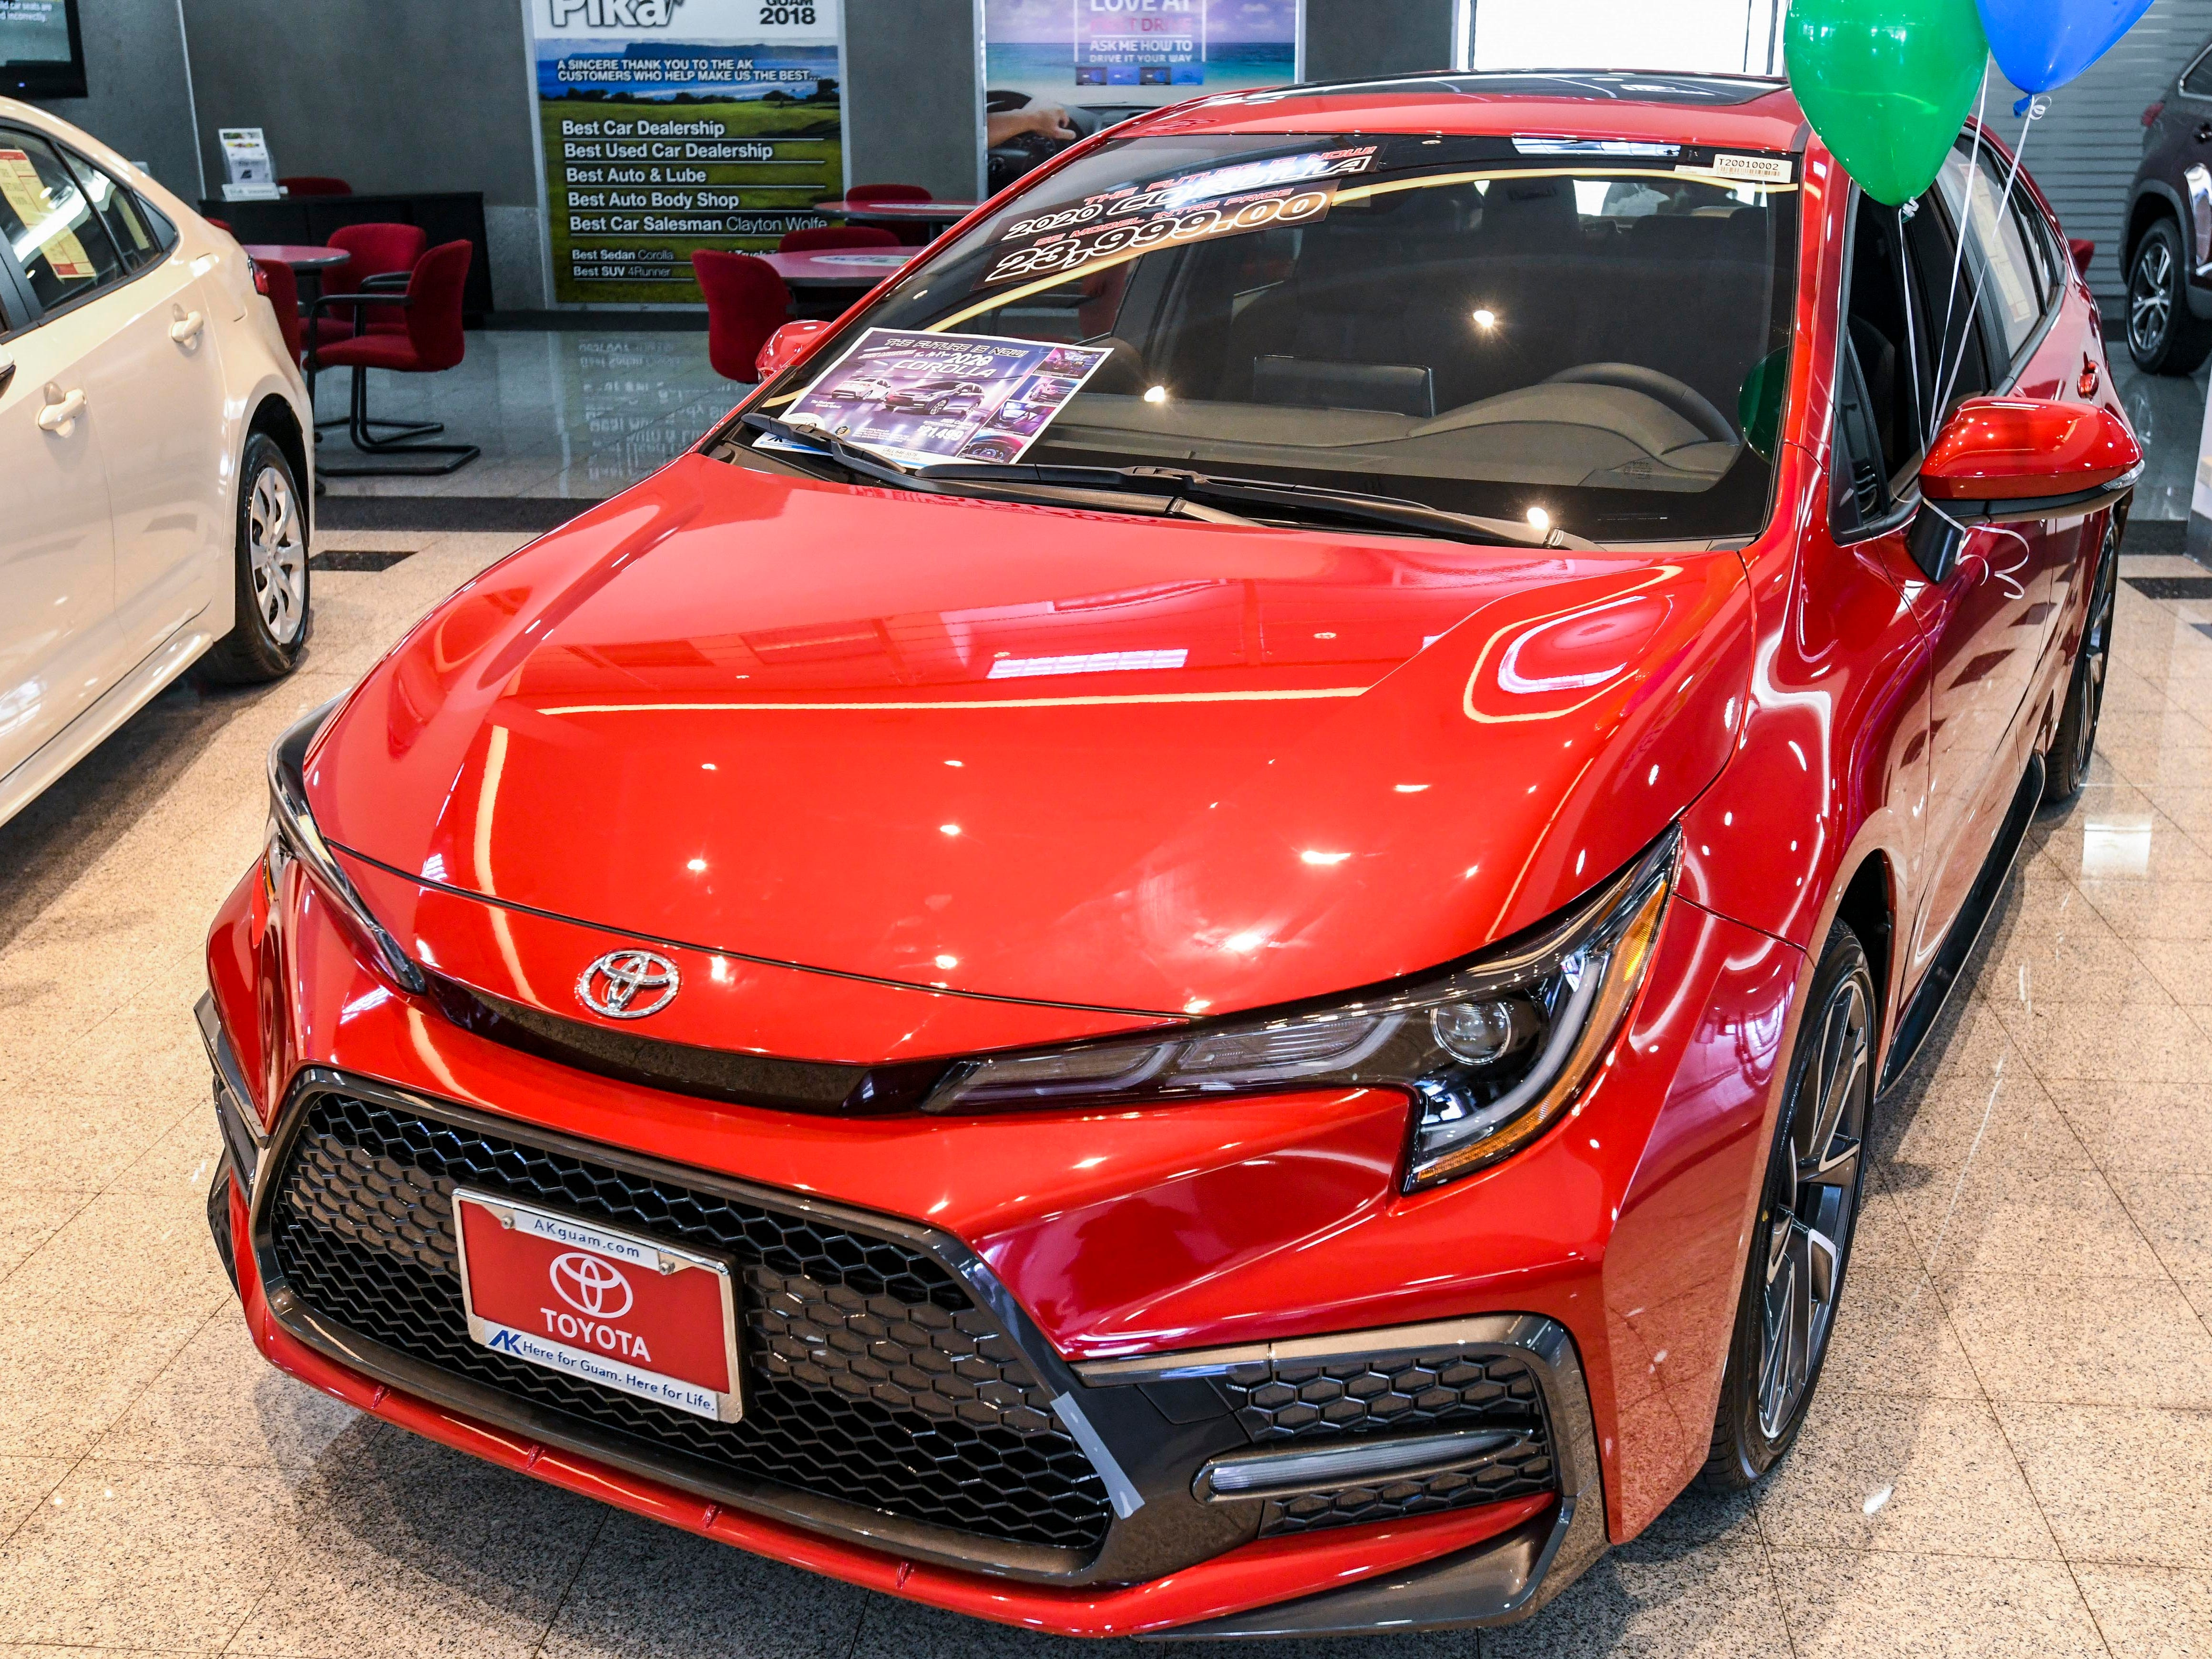 The 2020 Toyota Corolla SE (Sport Edition), as seen on the showroom floor of the Atkins Kroll dealership, in Tamuning on Saturday, Feb. 9, 2019. The newly redesigned vehicle is one of three models introduced and available at Atkins Kroll Toyota. Other models include the Toyota Corolla LE (Luxury Edition) and the Toyota Corolla HE (Hybrid Edition).